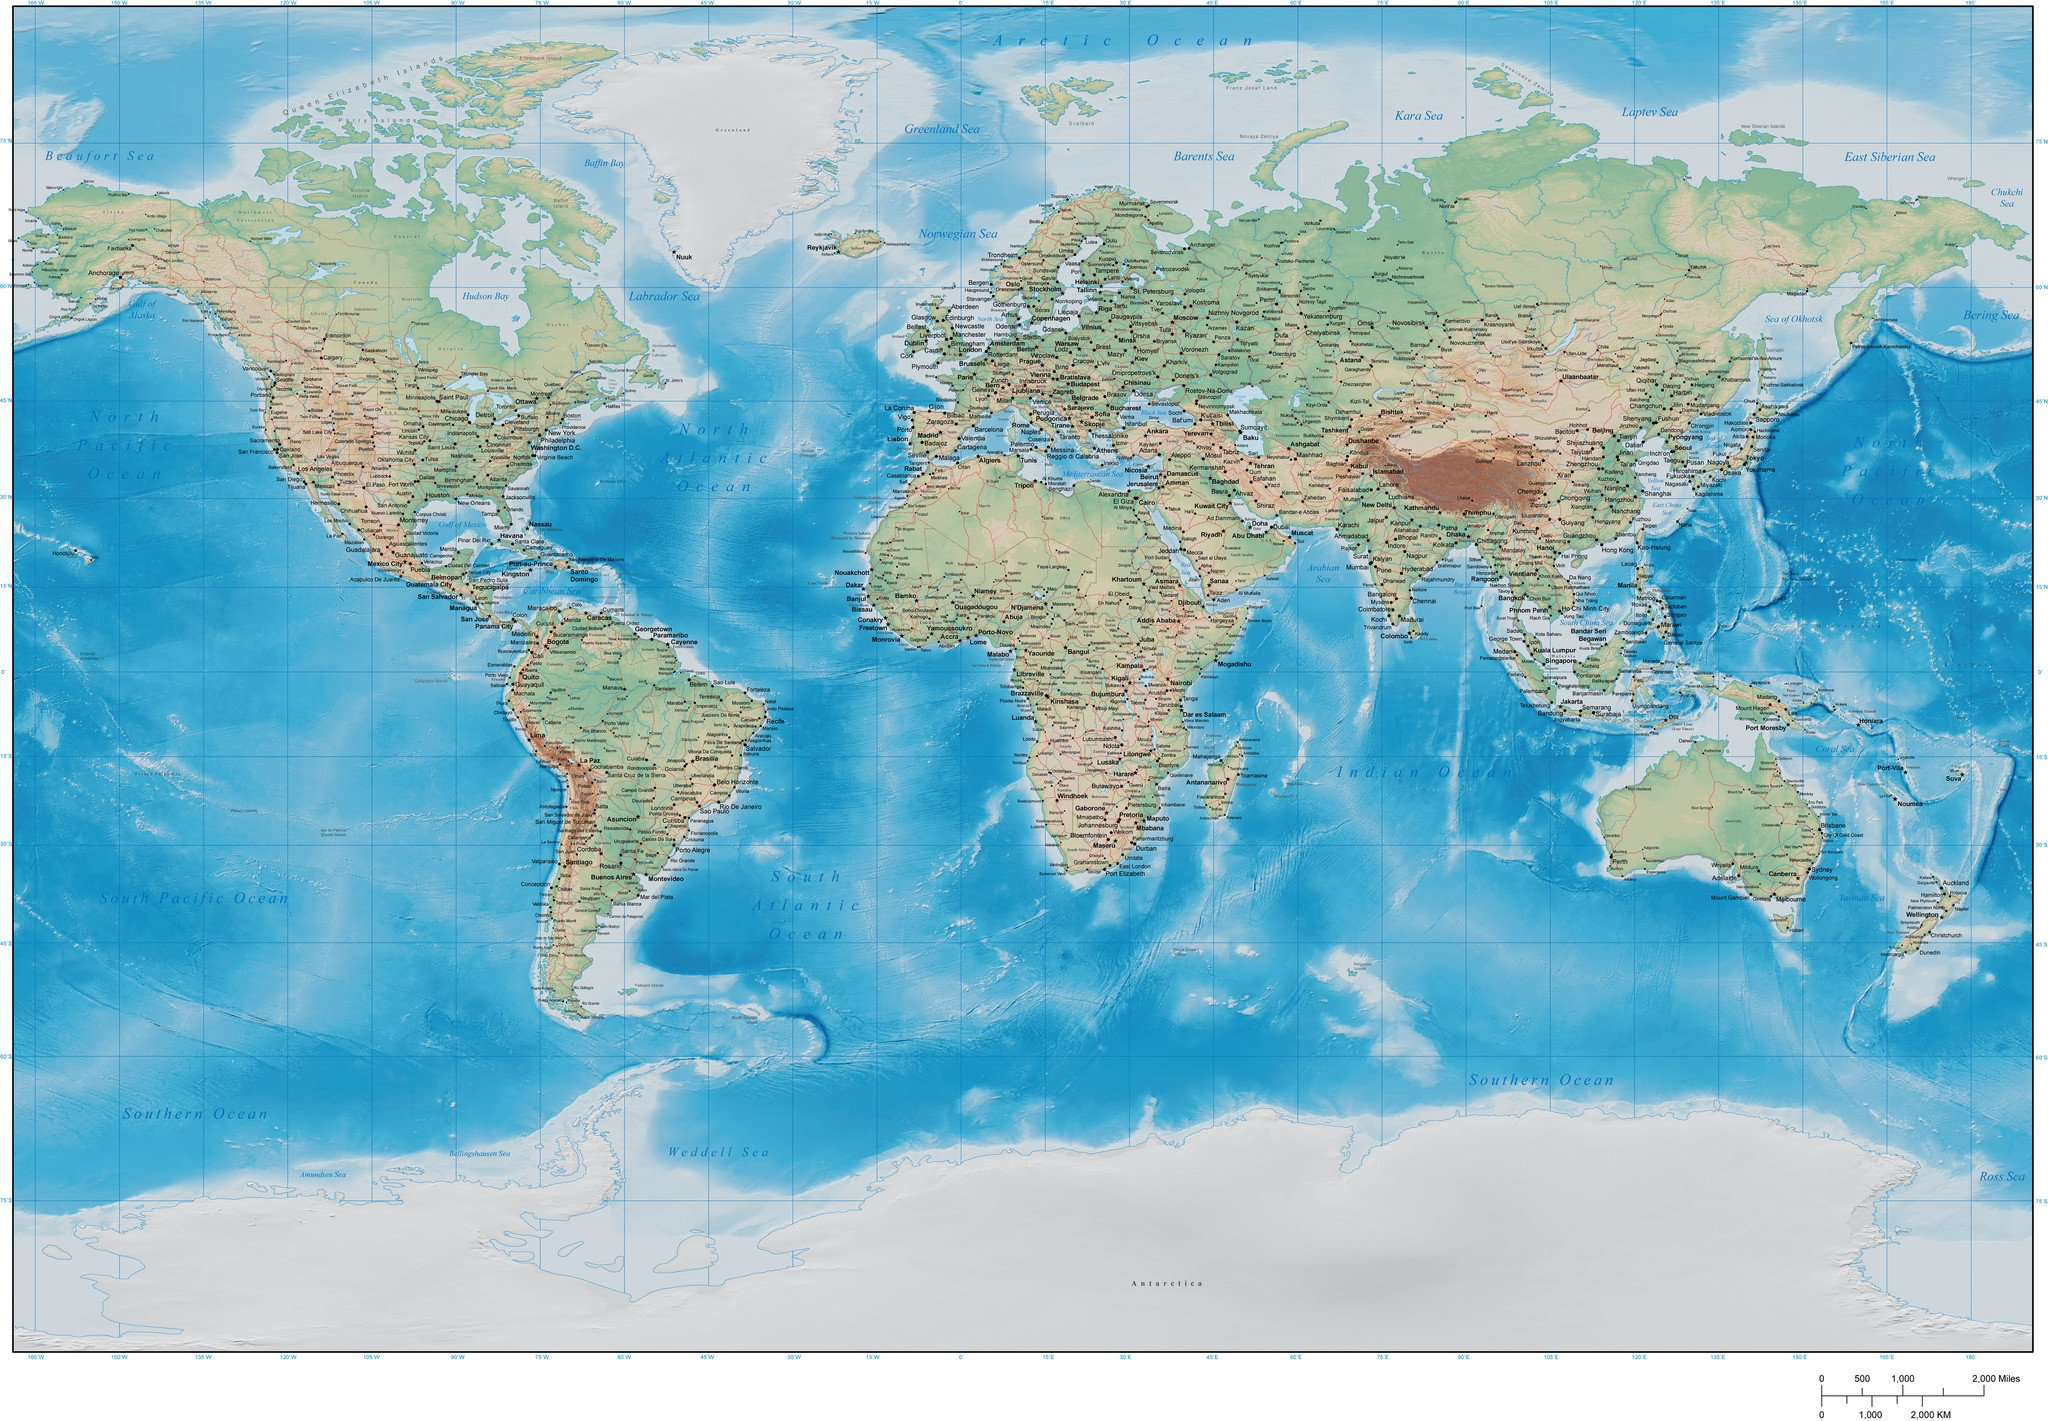 Terrain World Map.Digital 35 X 22 Inch Terrain World Map In Adobe Illustrator Vector